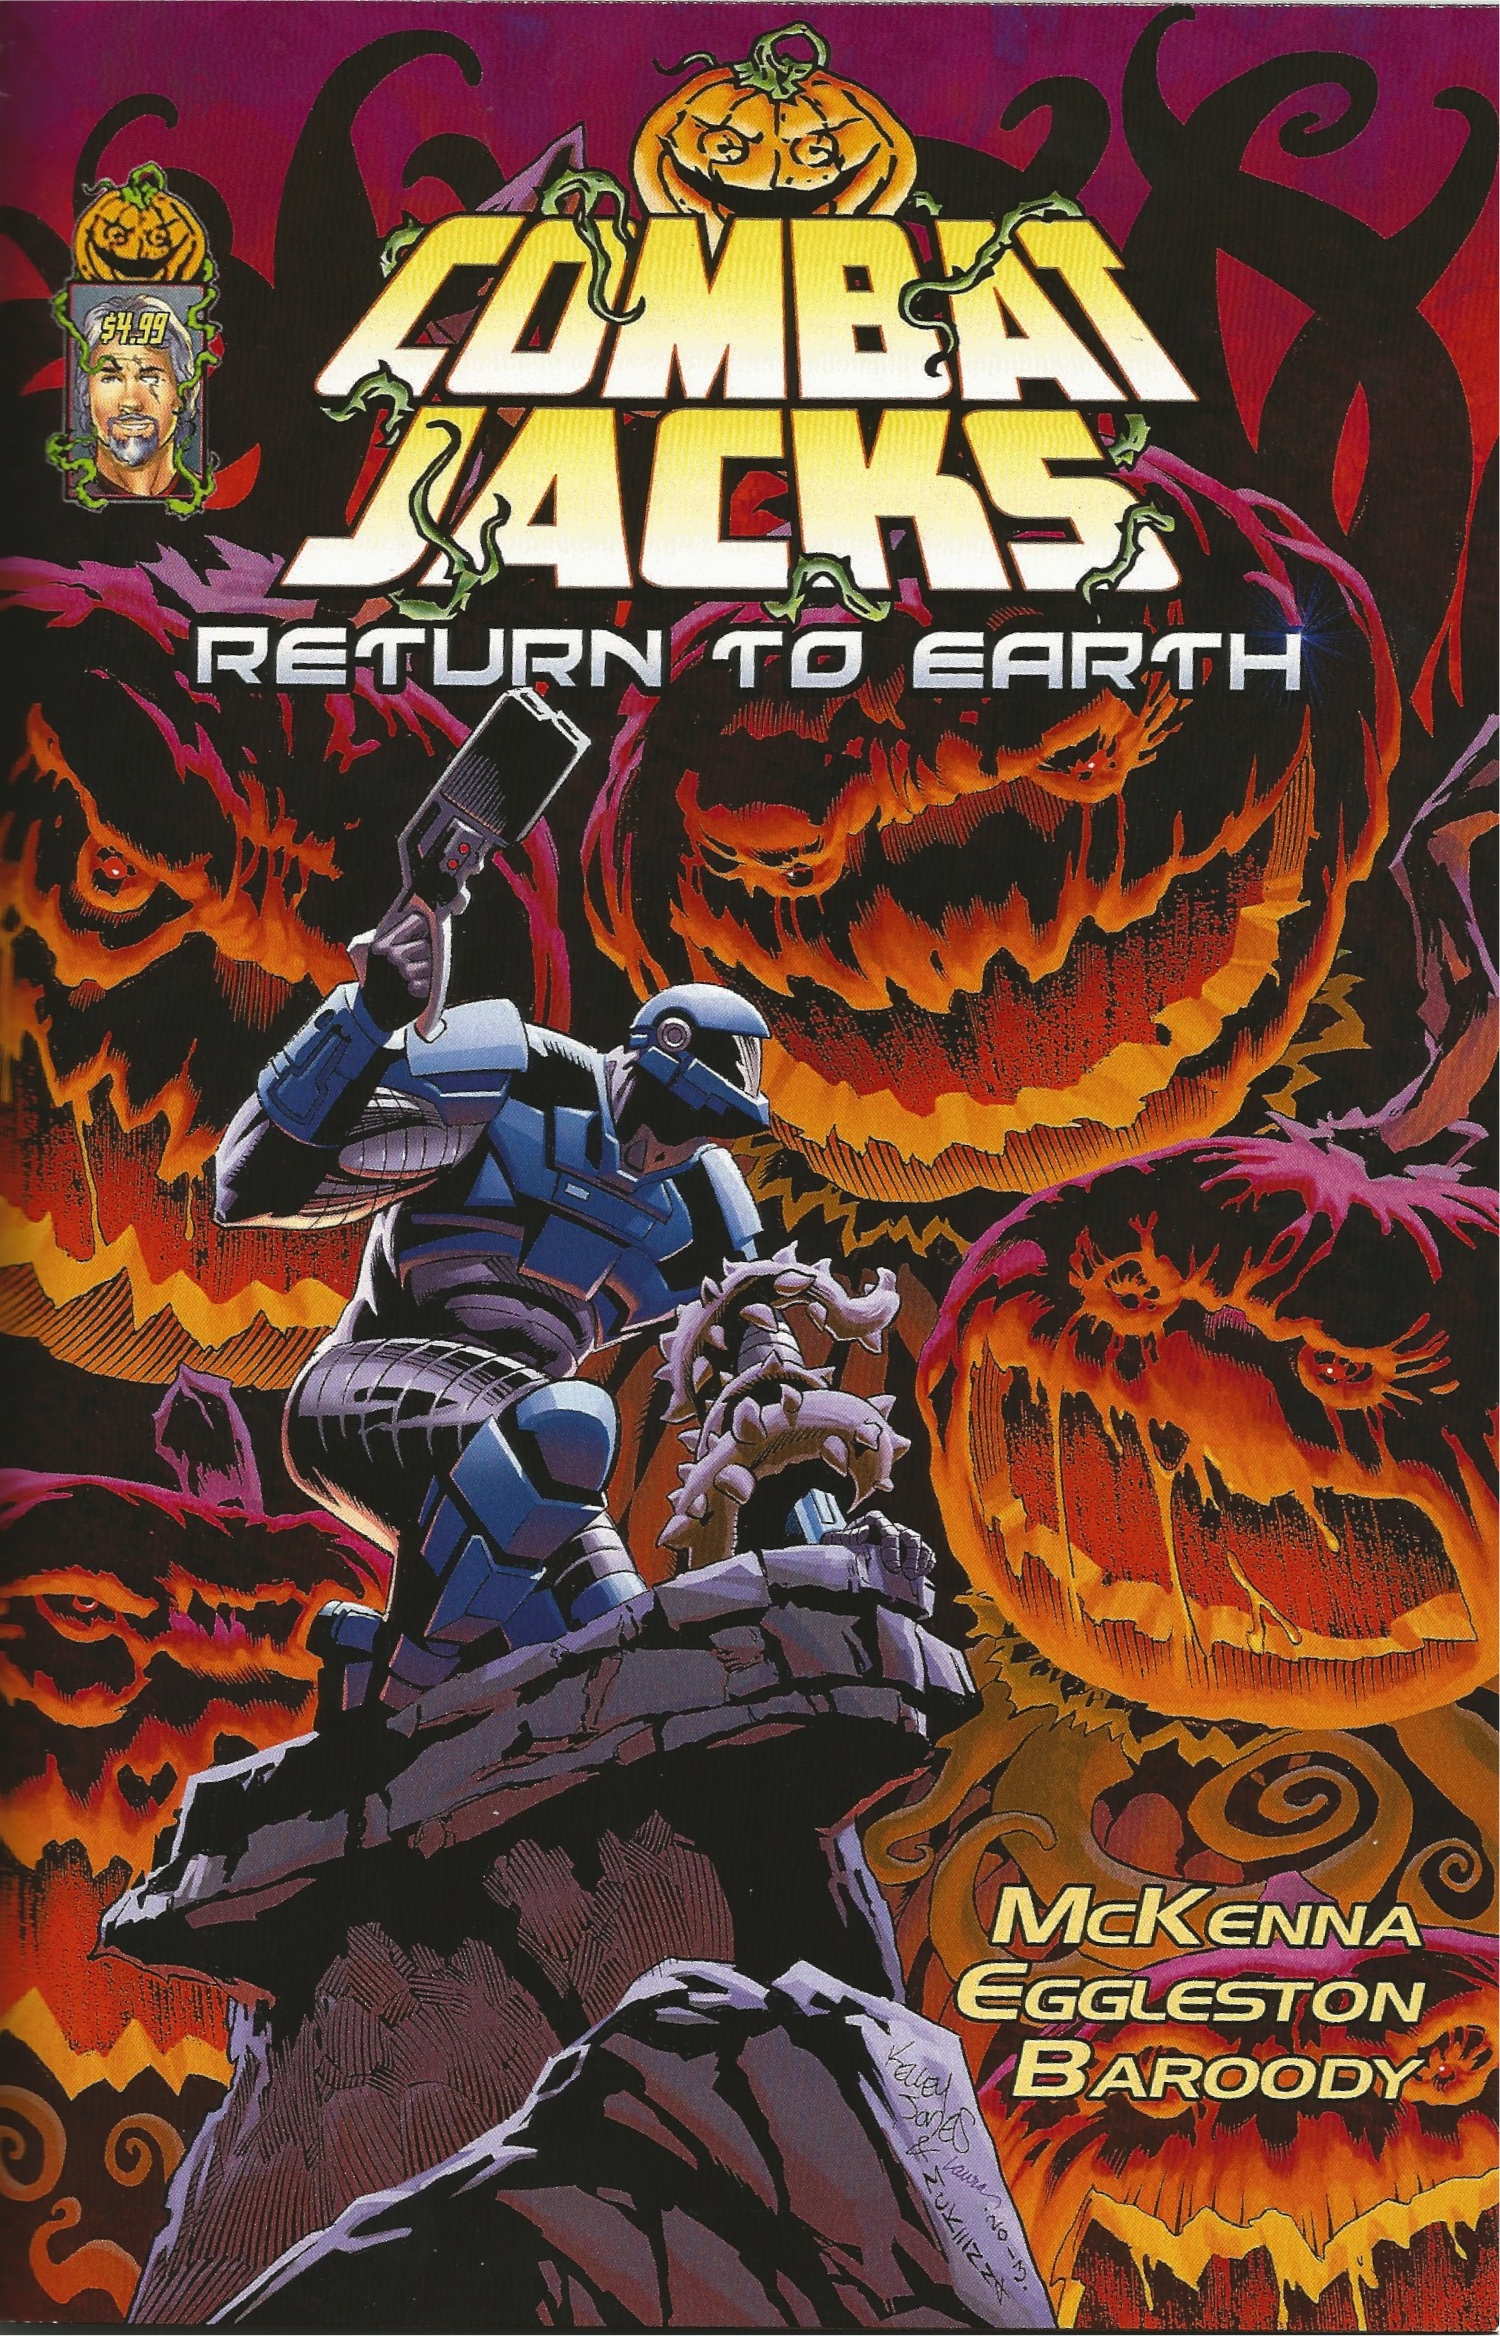 REVIEW: Combat Jacks #2 - Return To Earth